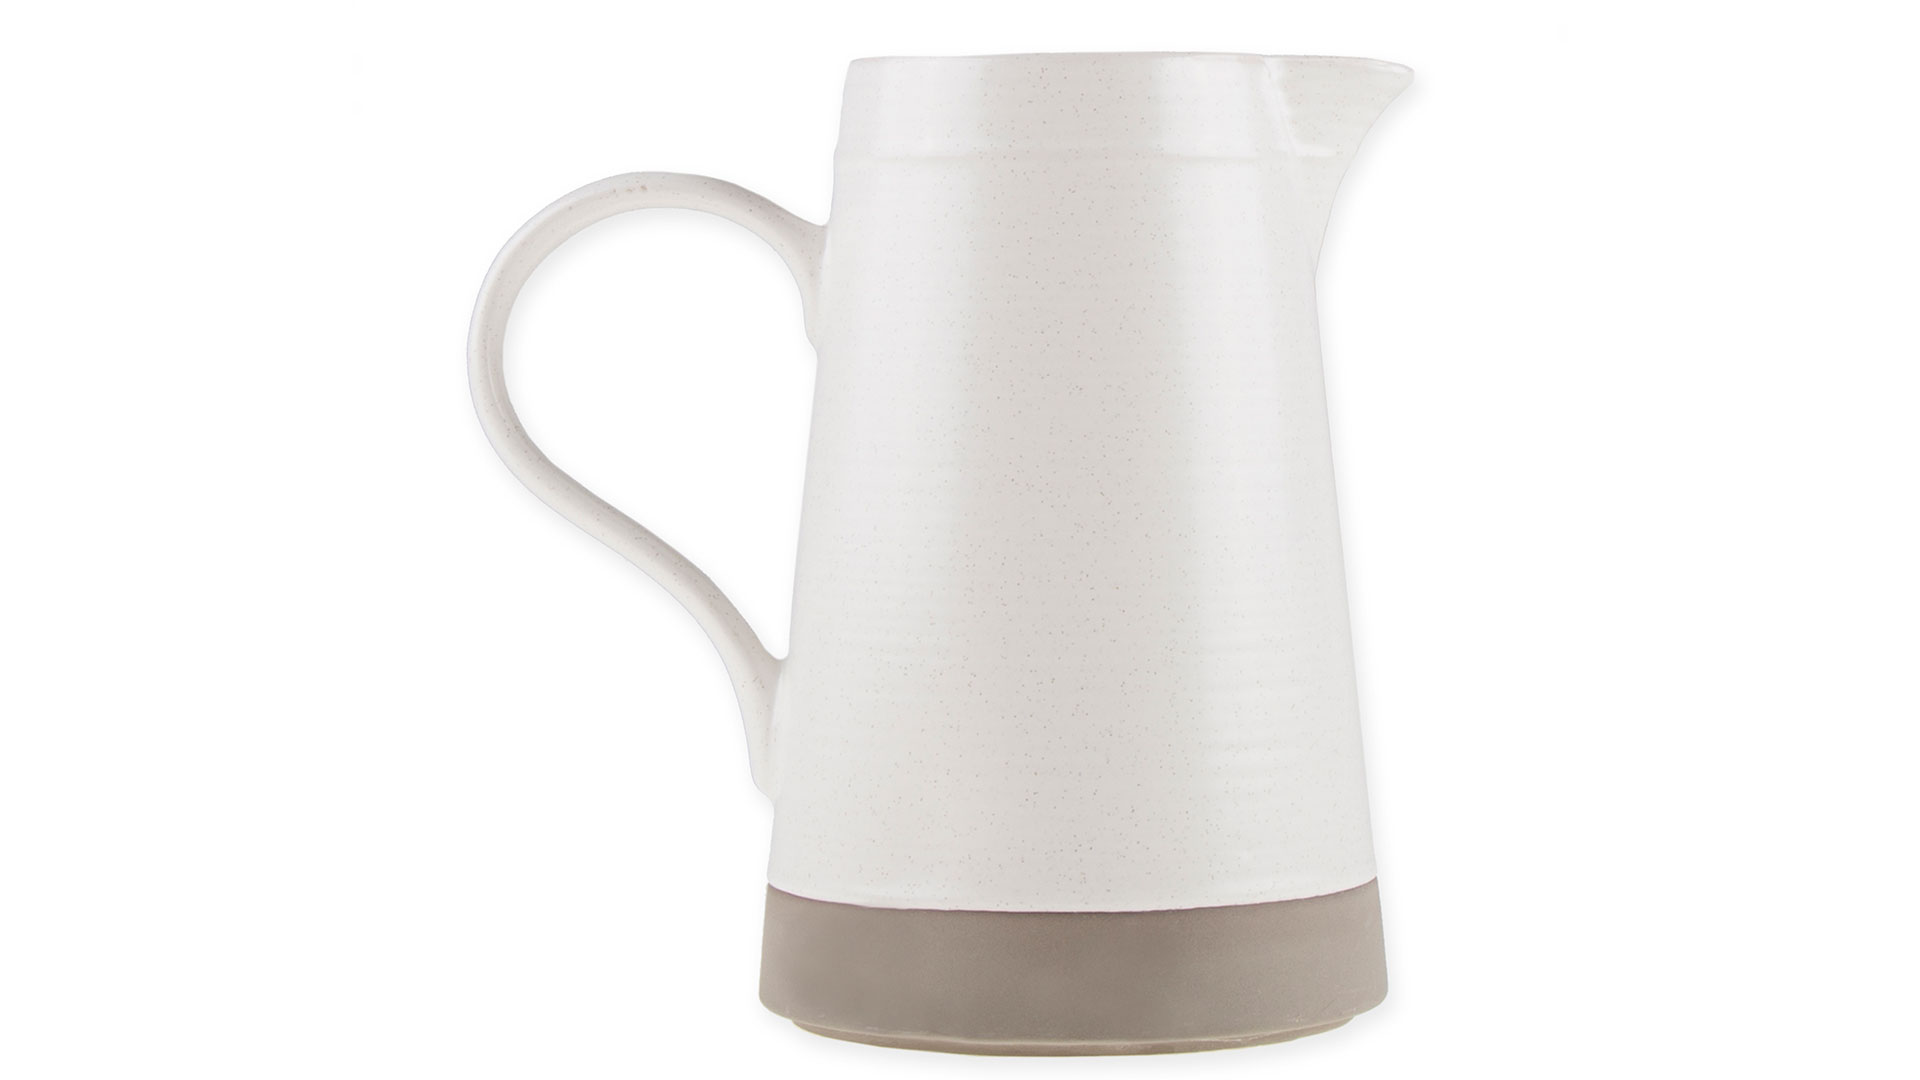 Bed Bath & Beyond Bee & Willow Pitcher